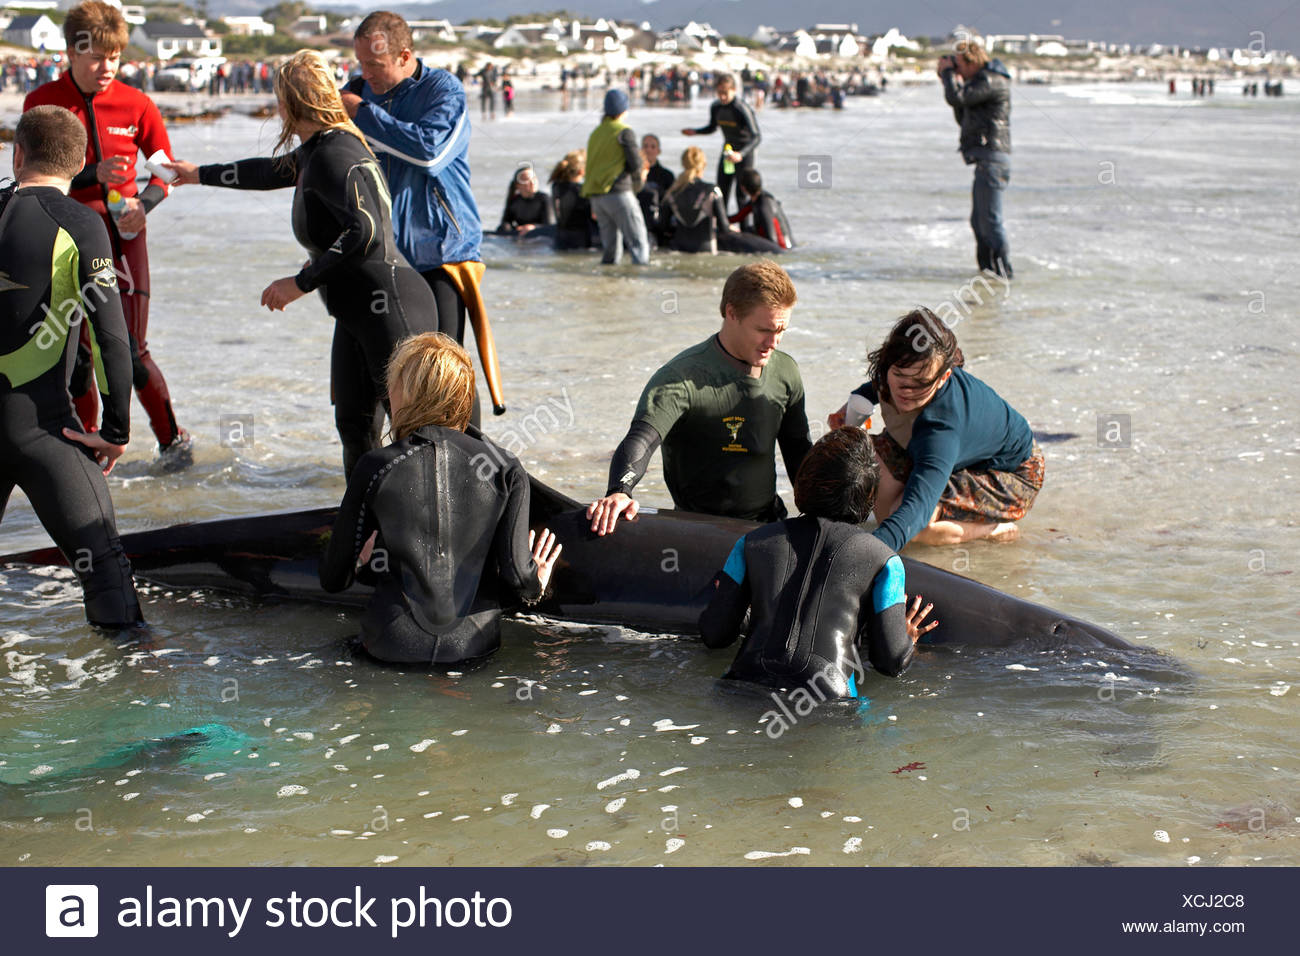 Beached whale rescue - Stock Image